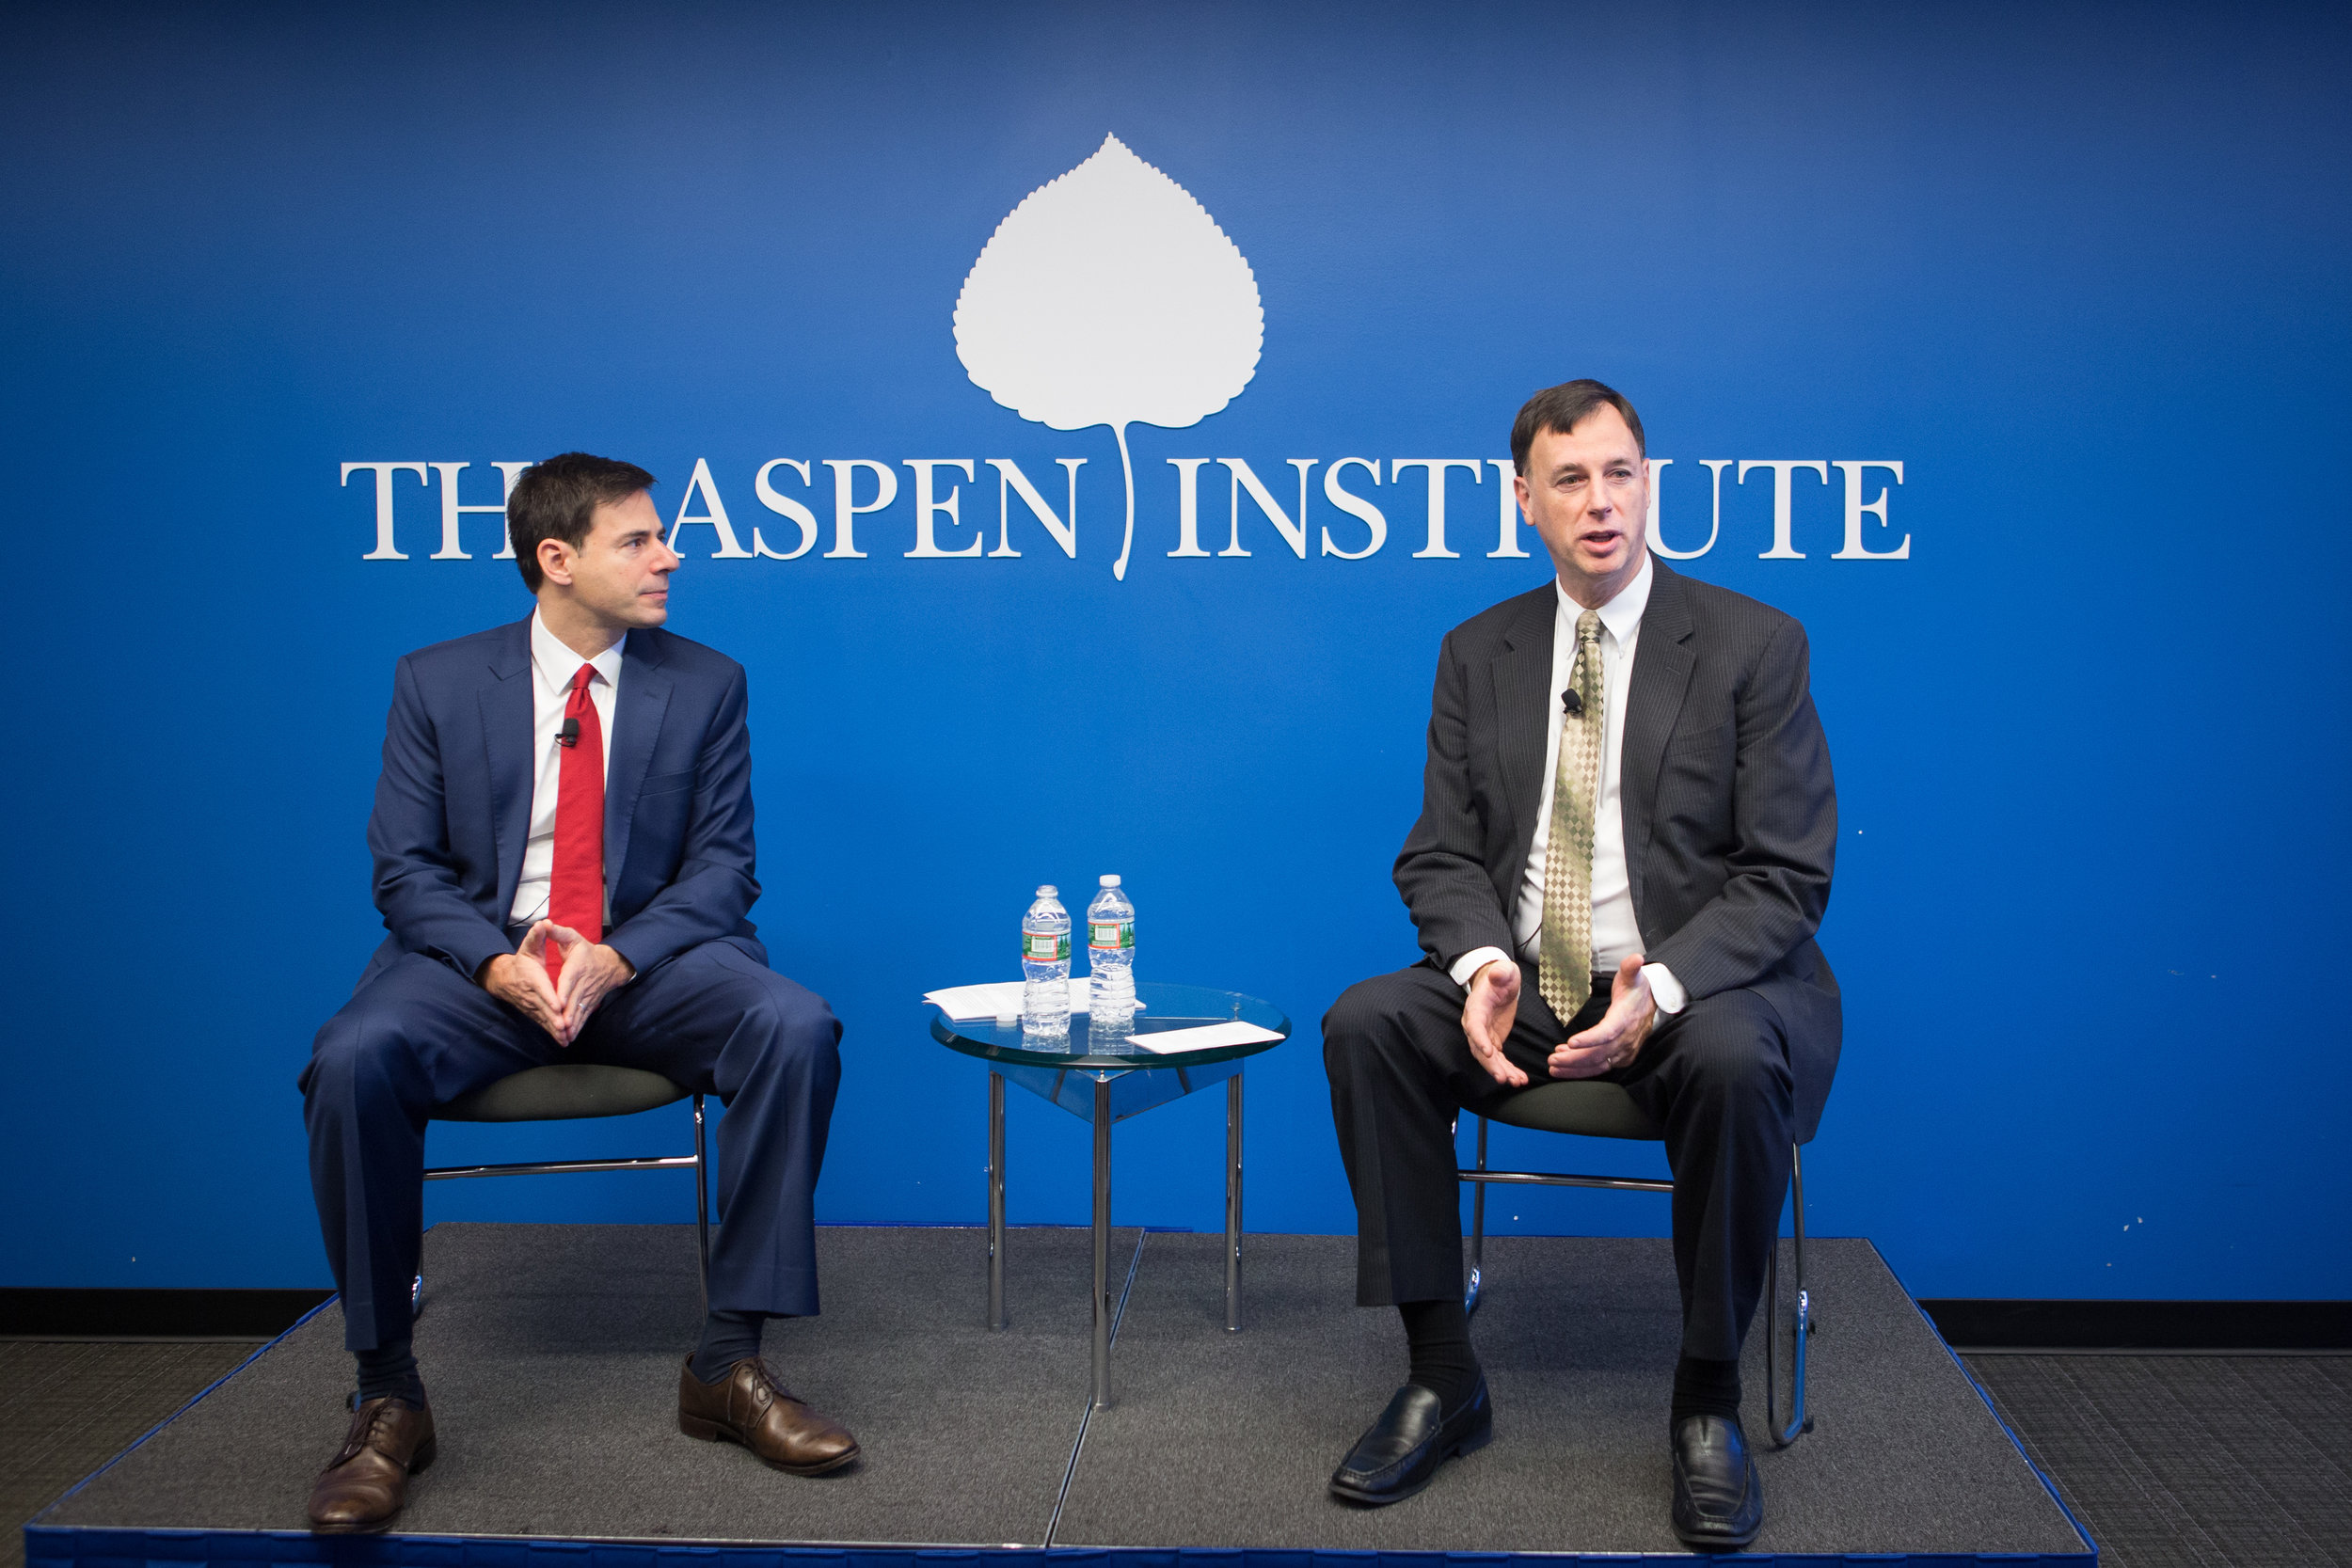 Rob Joyce (right), who spoke at the 2017 Summit, at an Aspen Institute panel with John Carlin.